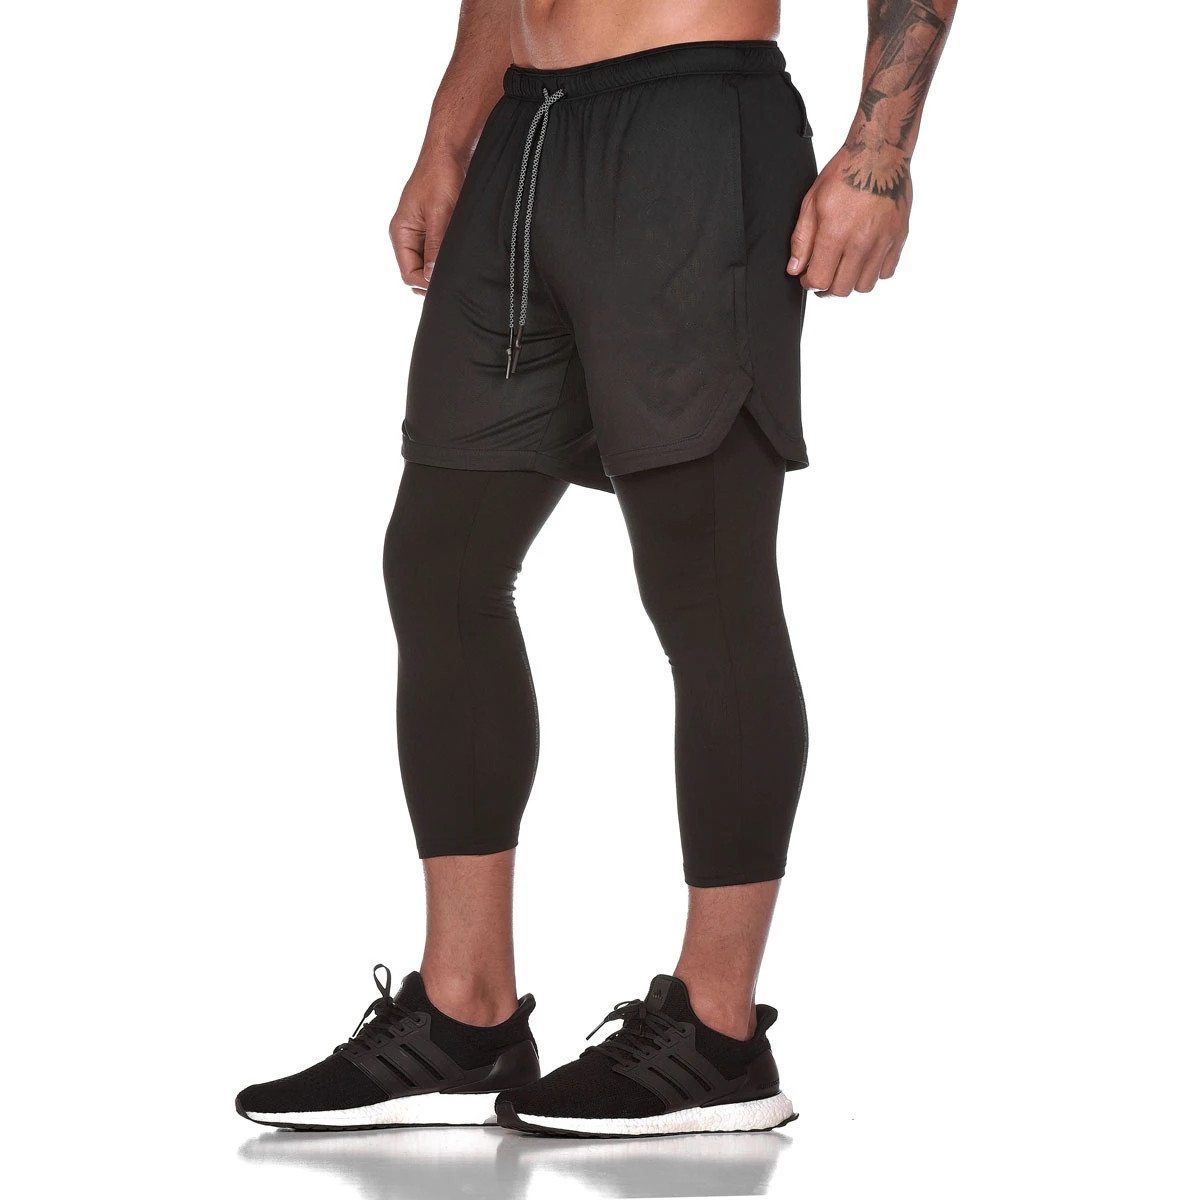 Men Legging Pants 2 In 1 Legging  Mens Joggers Pants Basketball Ankle-Length Pants